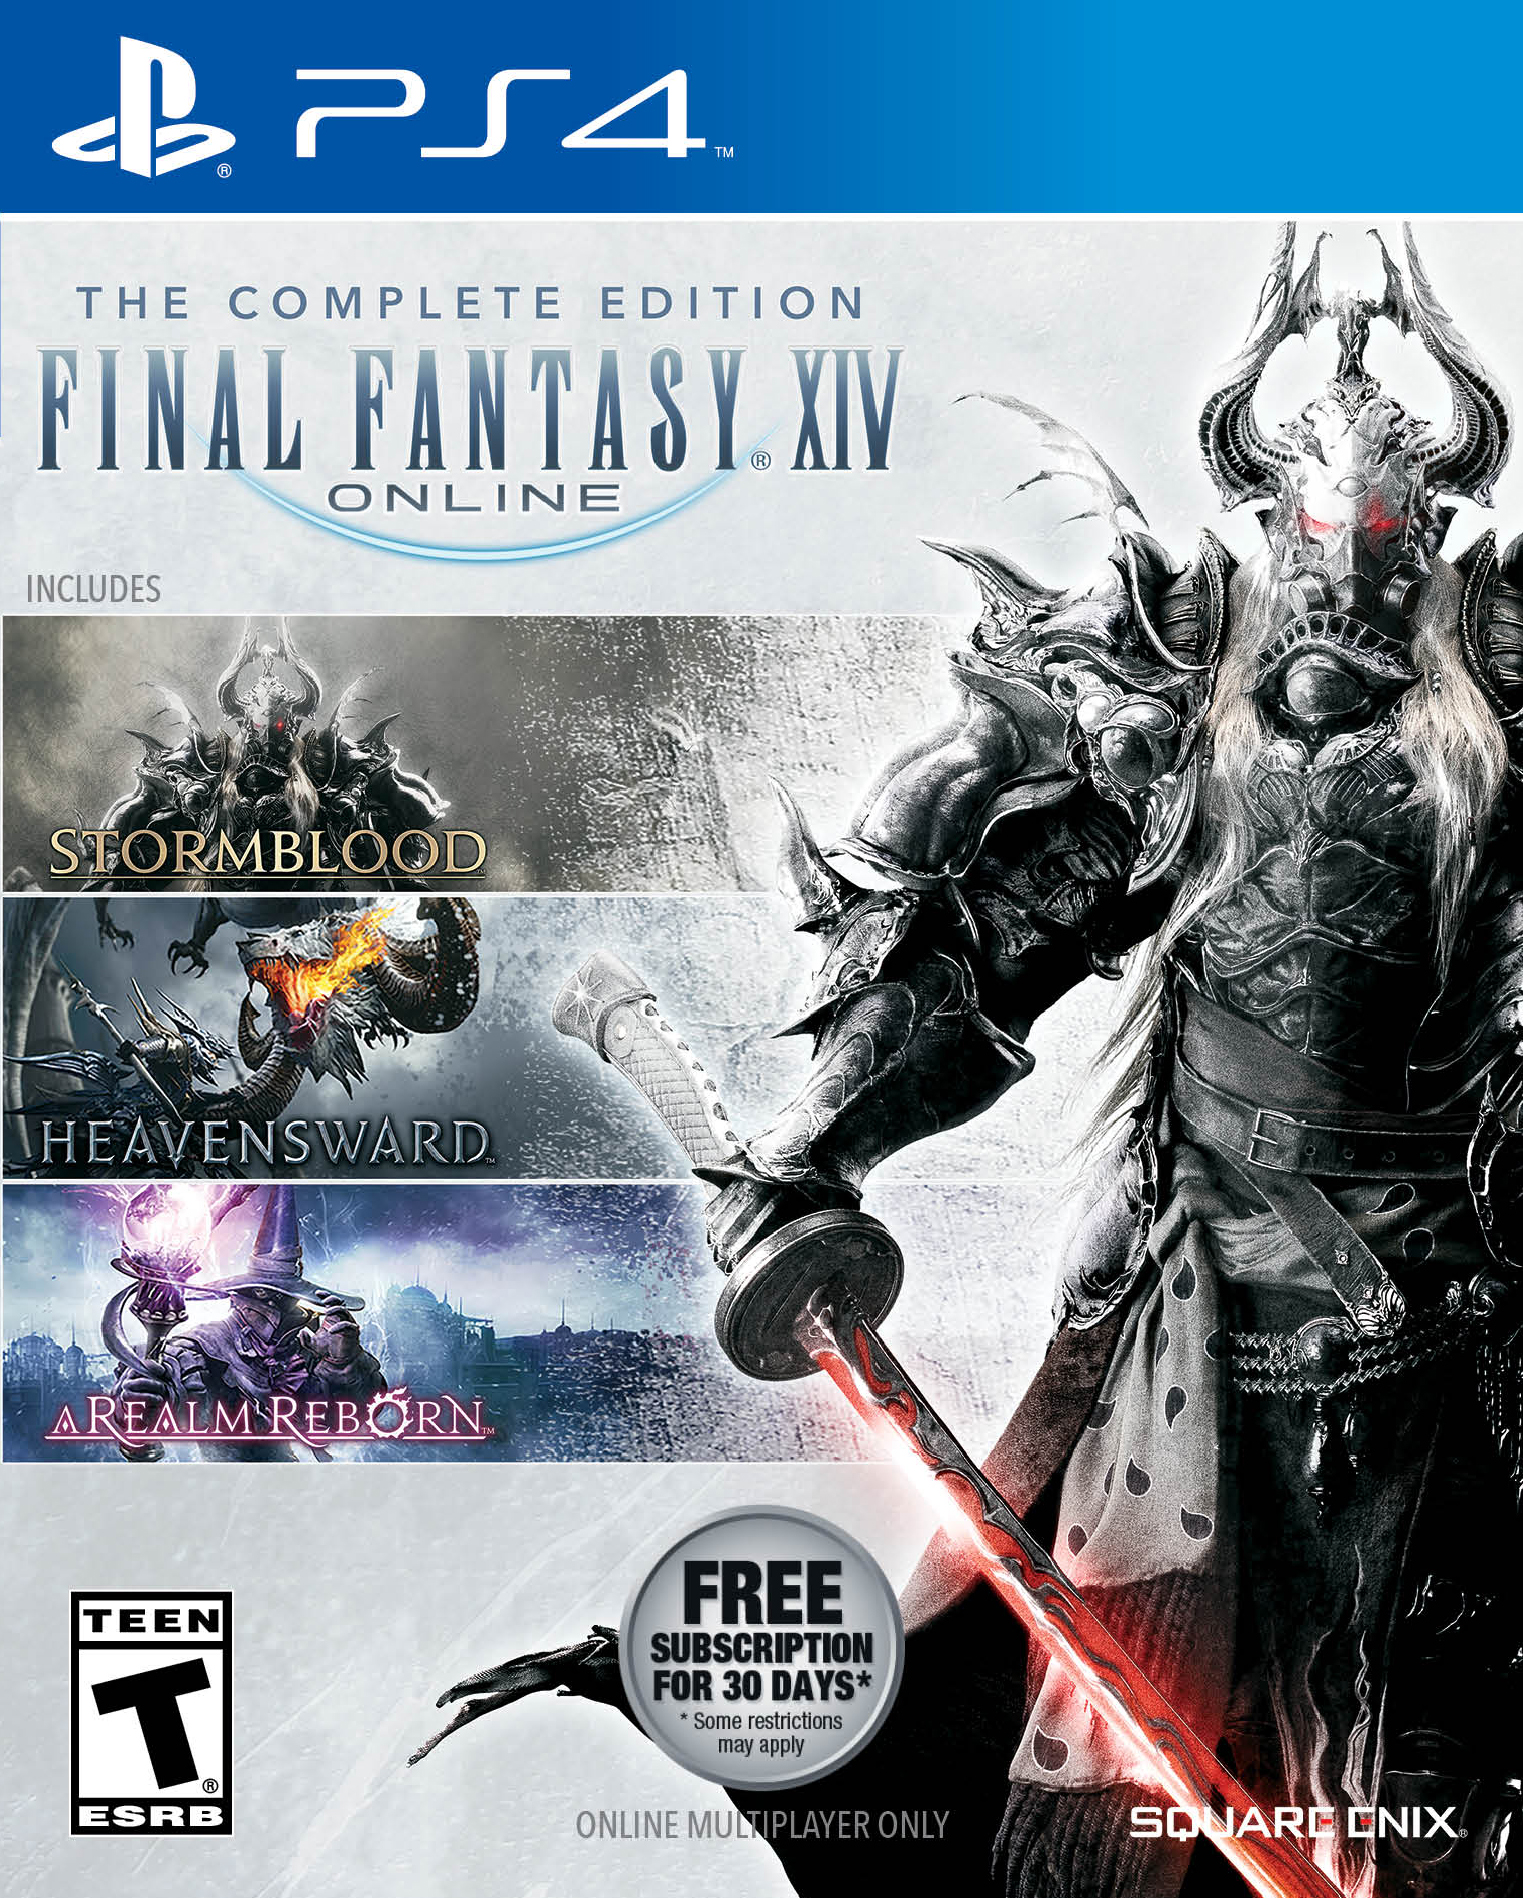 Final Fantasy XIV: Online Complete Edition PlayStation 4